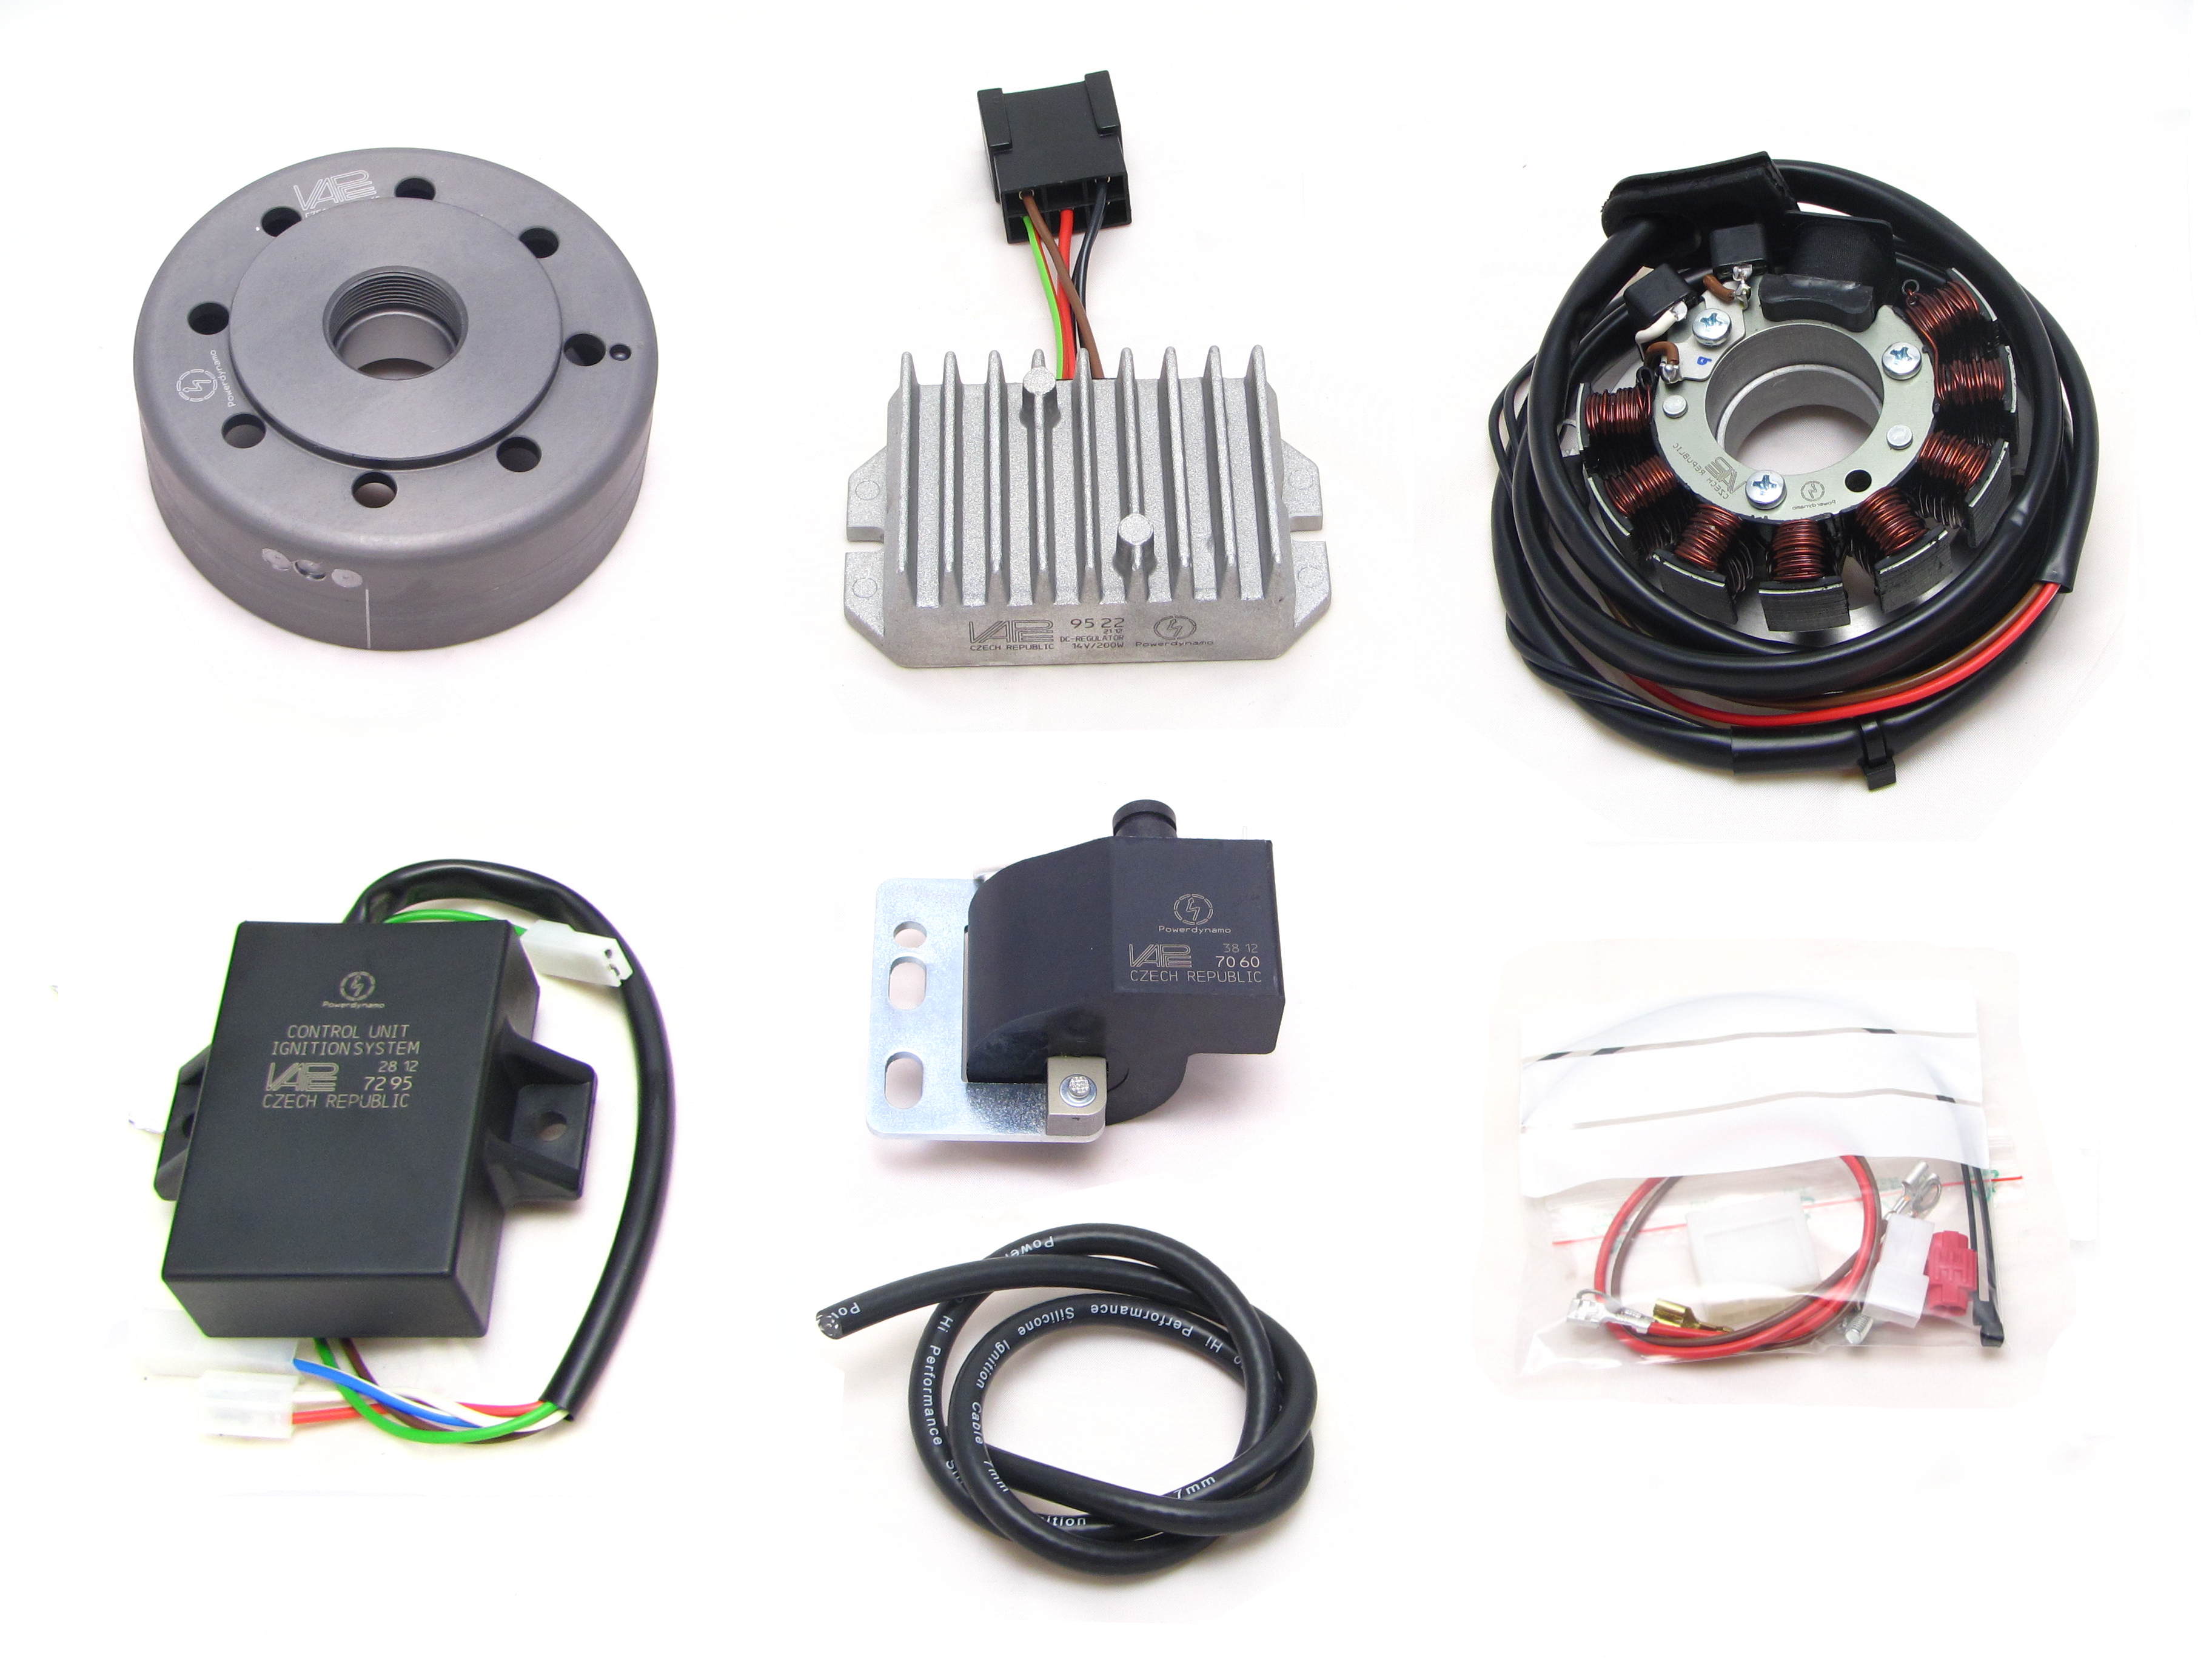 Powerdynamo For Mv Augusta 175 Csgt Electronic Ignition Wiring Diagram Ih Assembly Instructions Parts In The Pack Photo